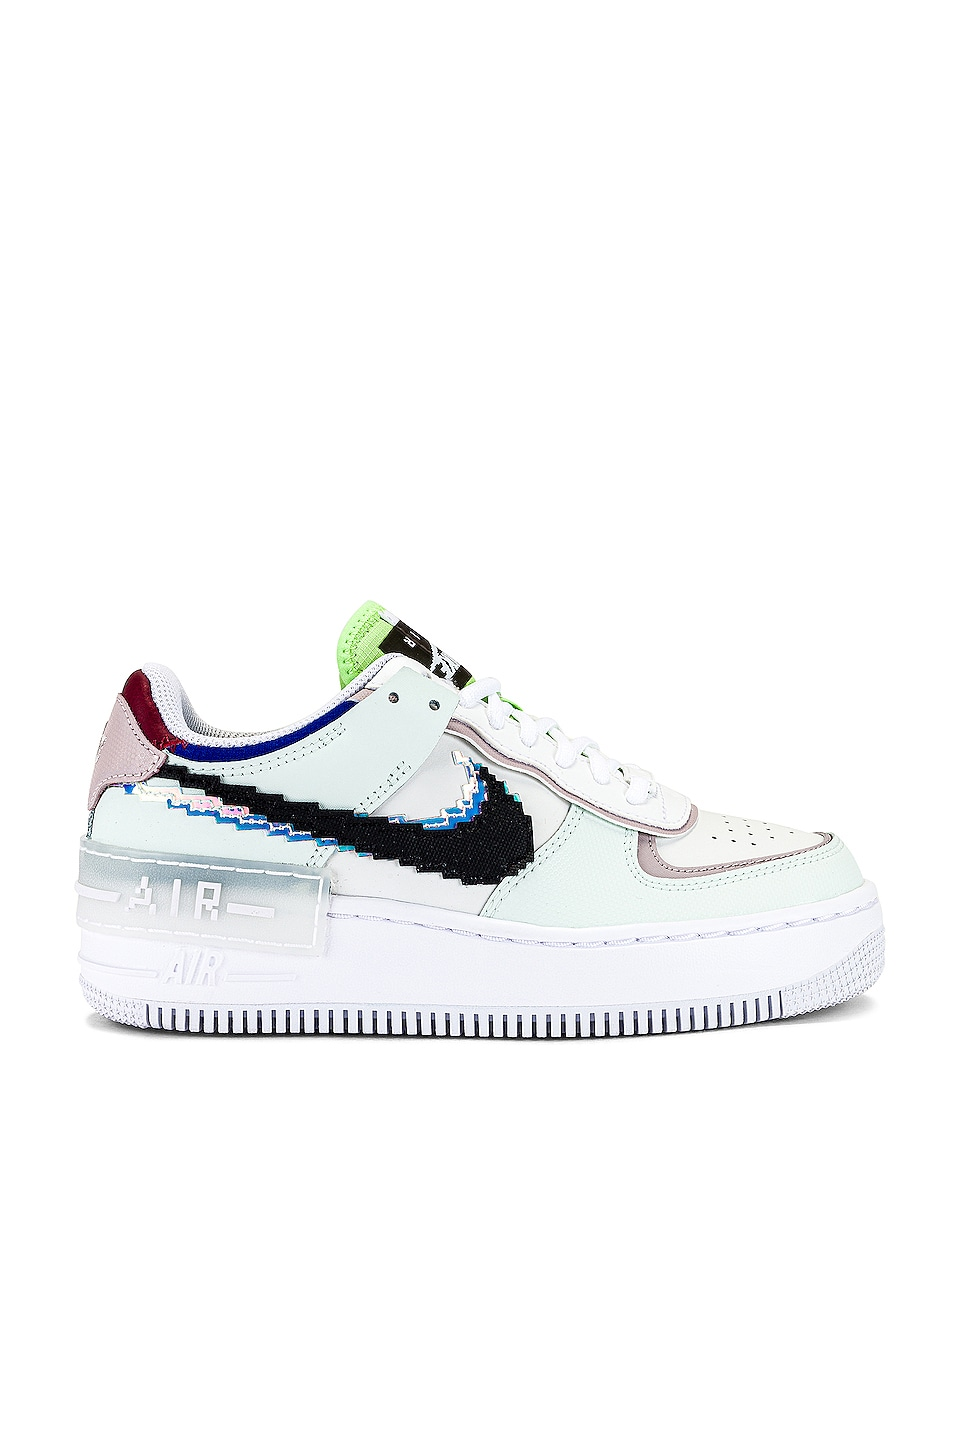 Nike Air Force 1 Shadow SE Sneaker in Barely Green | REVOLVE